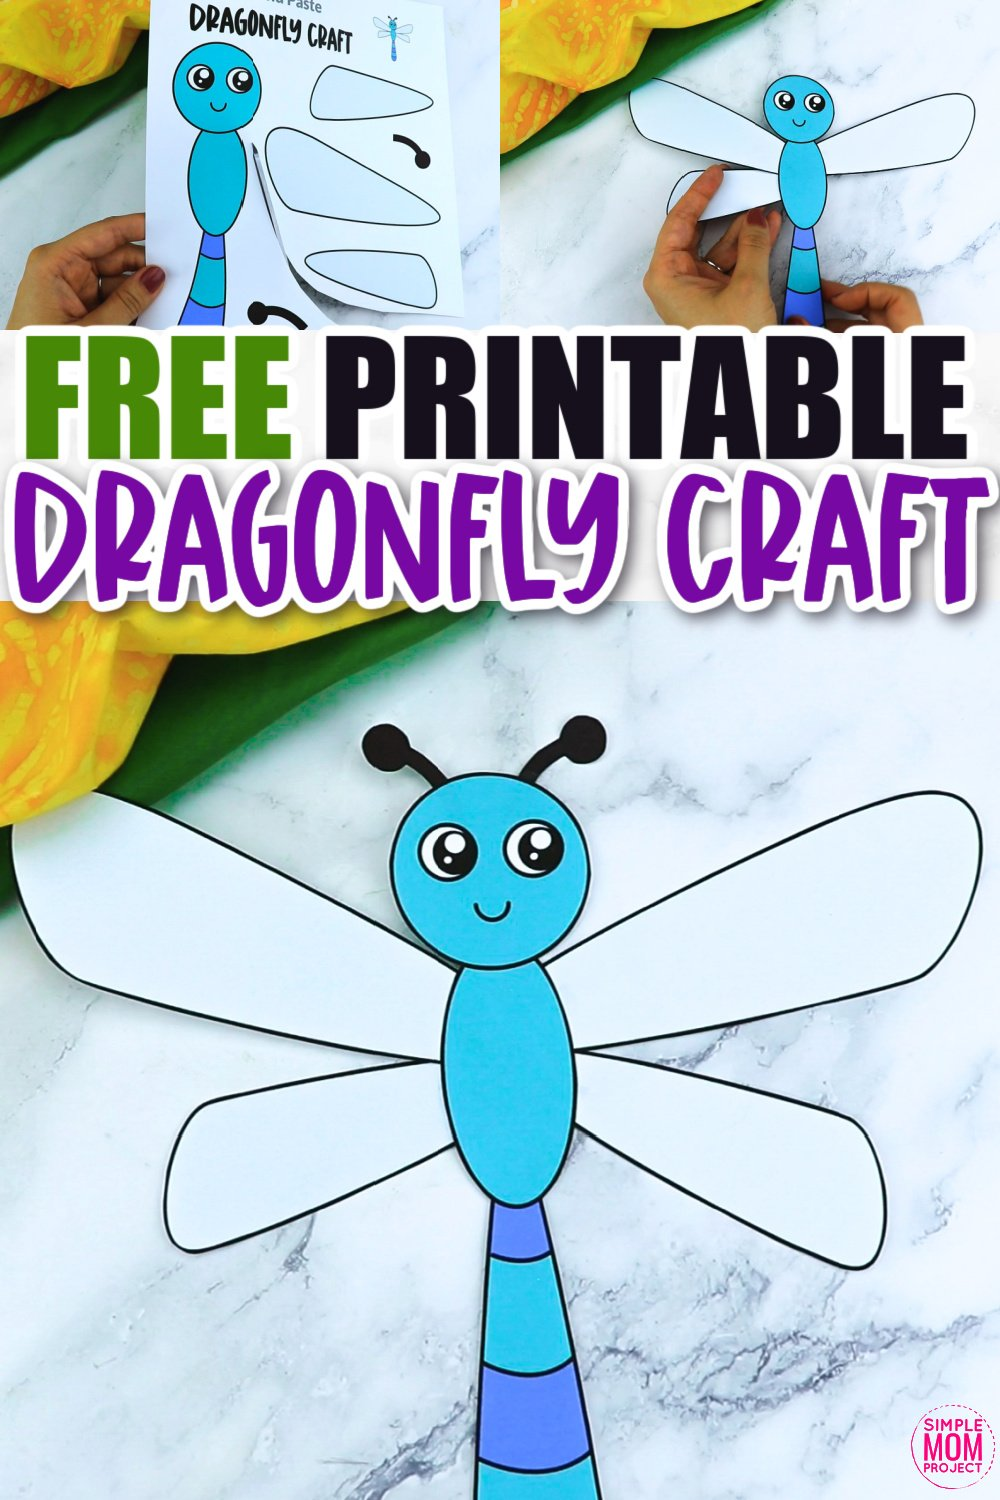 Click now for a simple way to teach the letter D in the alphabet, click now to download and print this easy dragonfly craft today! This insect craft is an easy preschool, kindergarten or toddler printable dragonfly craft! Turn it into a puppet by using recycled materials and gluing the dragonfly template to a paper plate or Popsicle stick. Options for this dragonfly craft are endless!